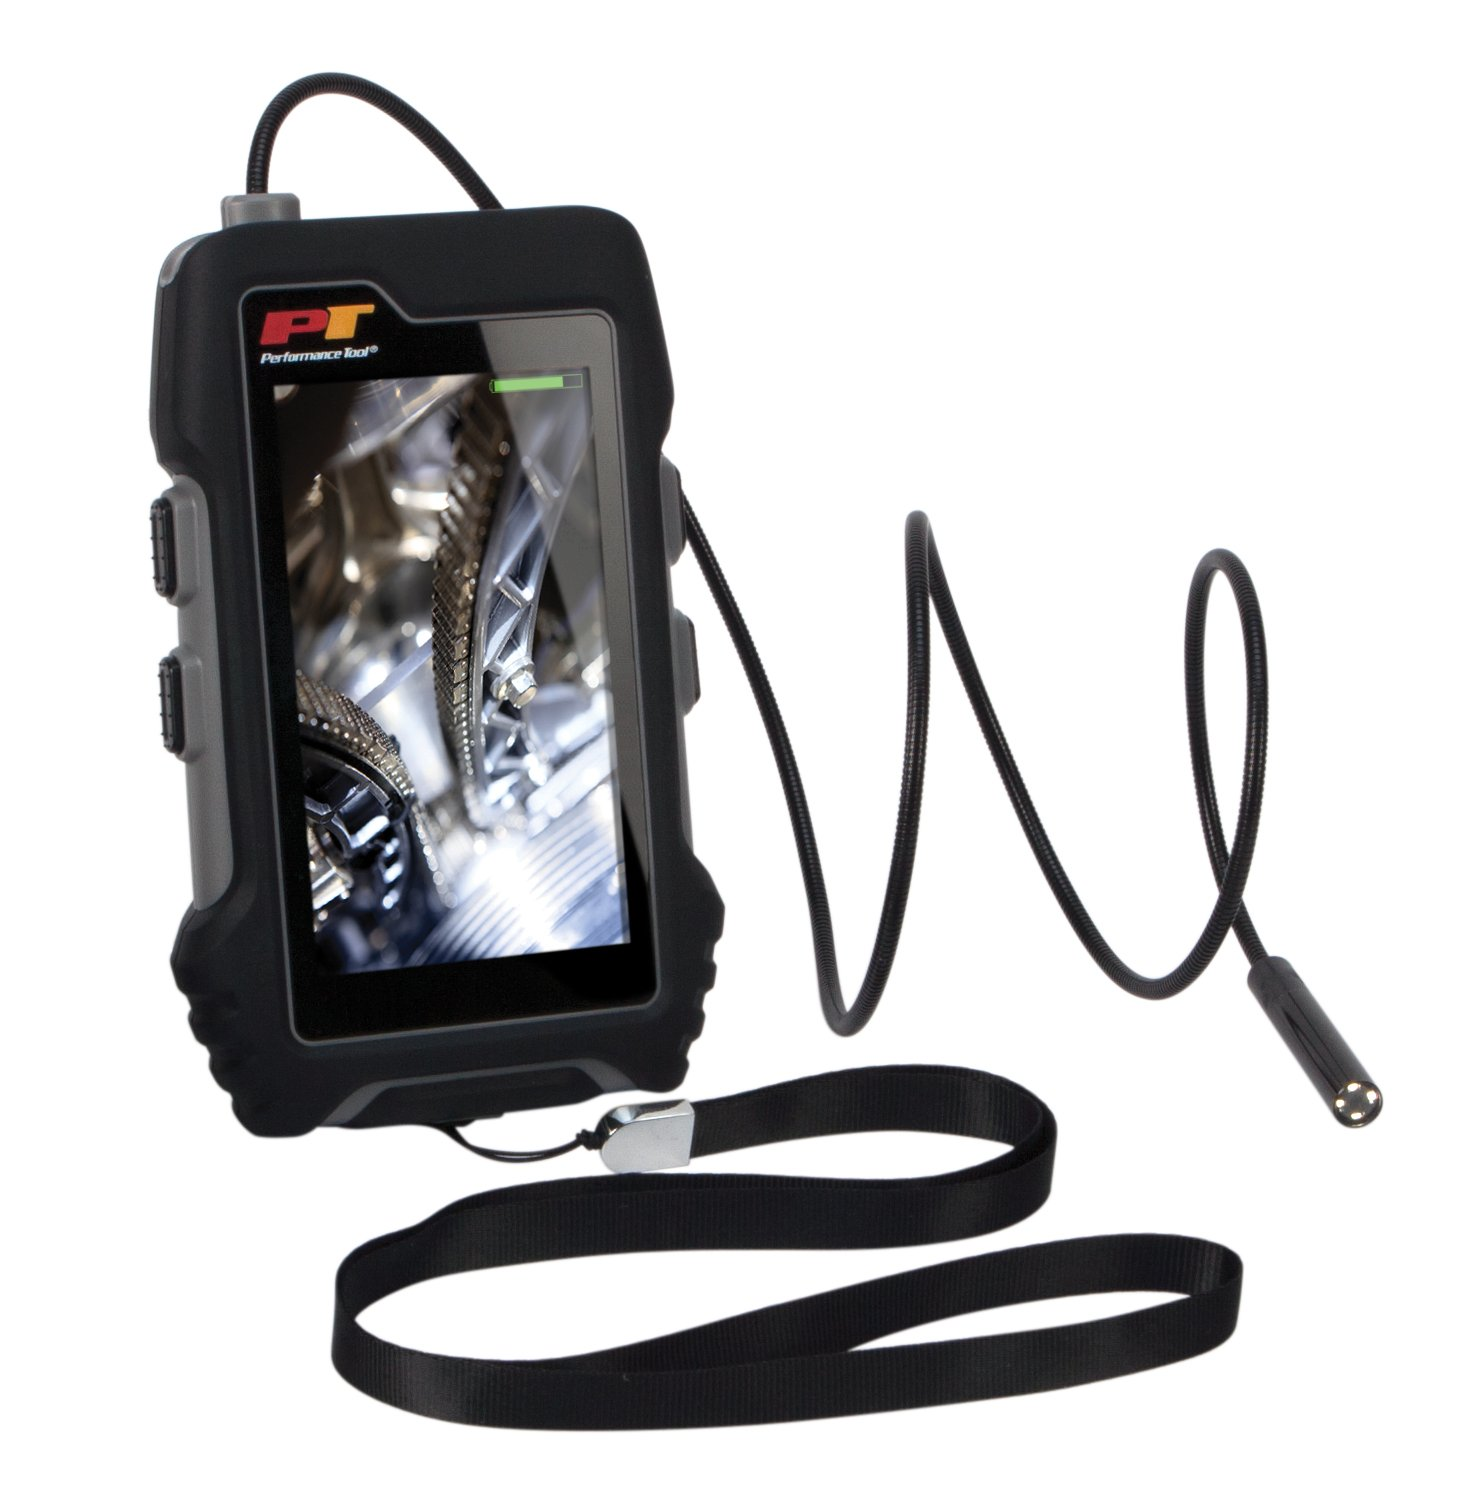 Performance Tool W50072 LCD Borescope 4.3'' Inspection Camera by Performance Tool